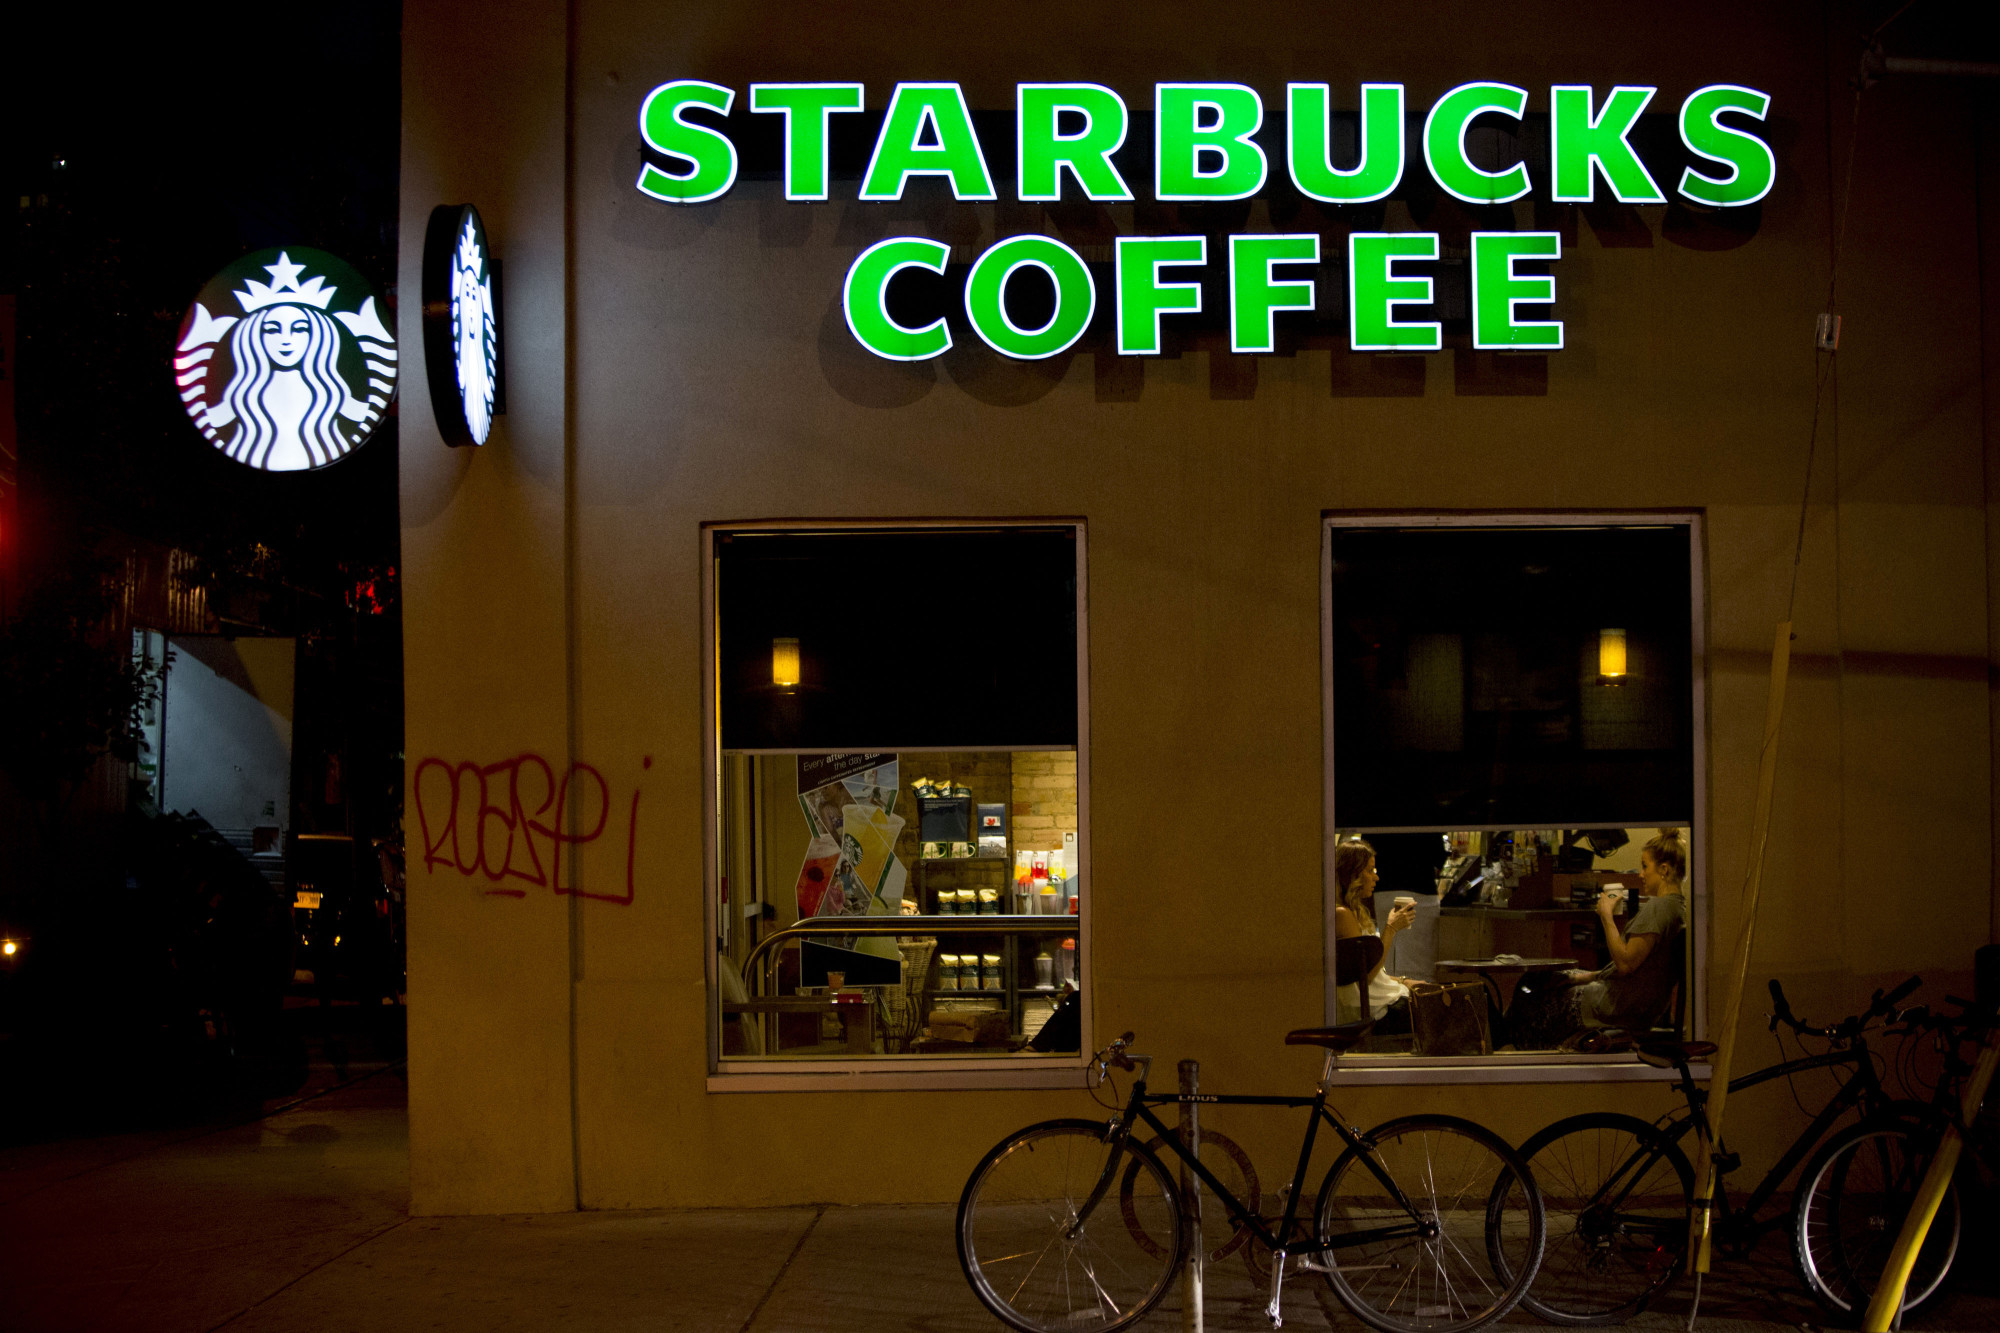 Starbucks Guns Policy Coffee Chain Asks Patrons To Leave